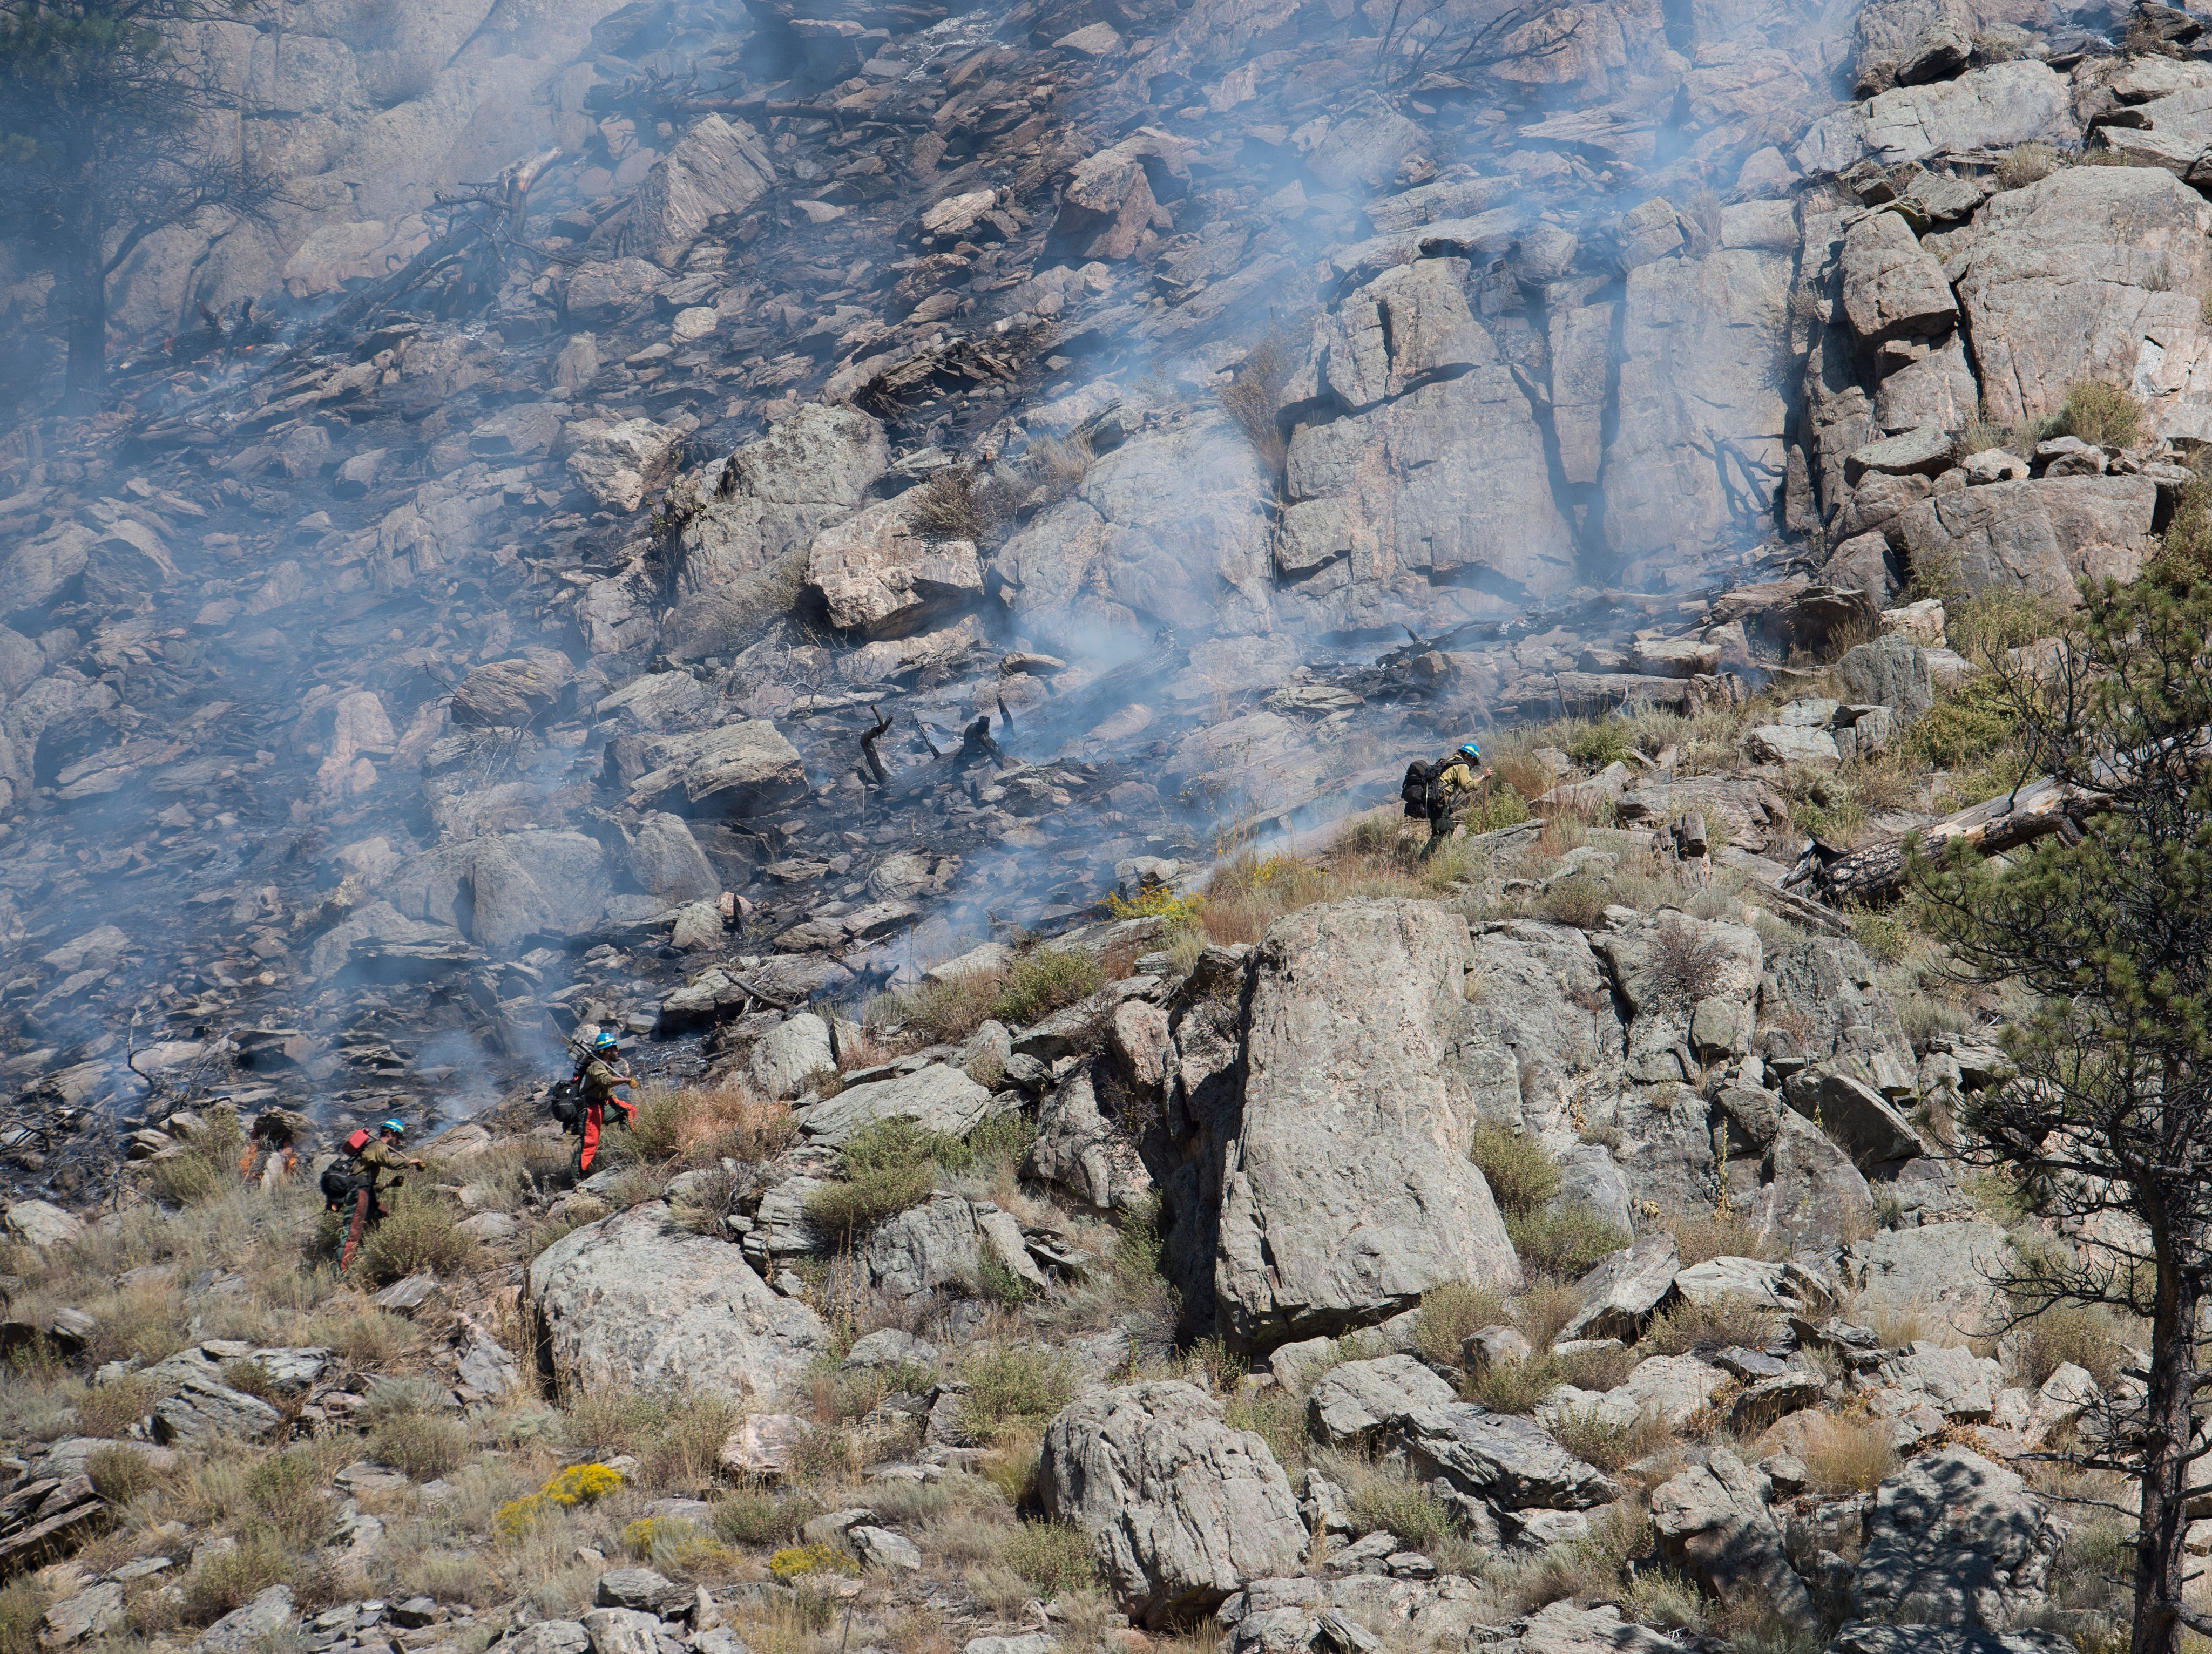 Wildland firefighters climb a ridge on fire to contain a blaze in Poudre Canyon west of Seaman Reservoir on Tuesday, September 12, 2018.